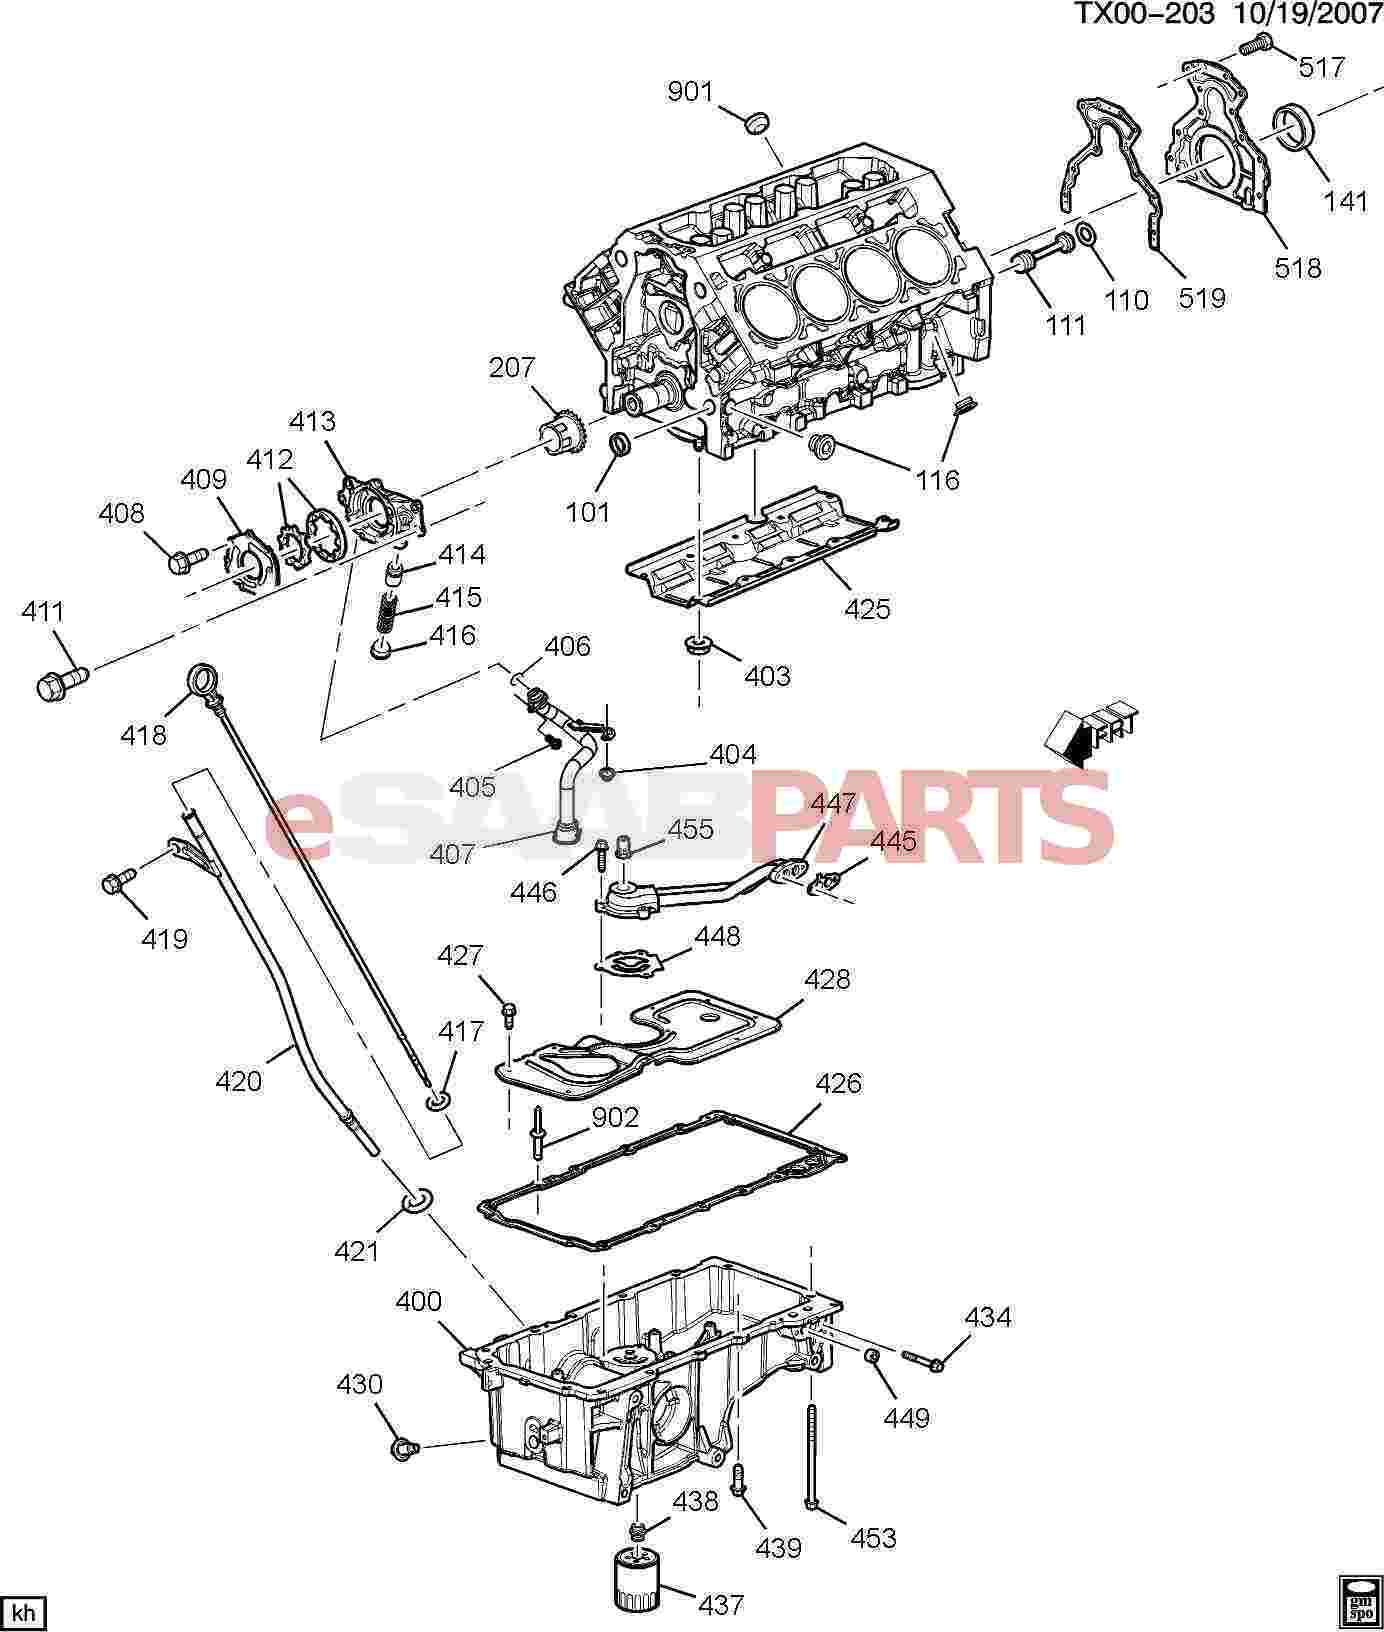 hight resolution of esaabparts com saab 9 7x engine parts engine internal 5 3m engine asm 5 3l v8 part 4 oil pump pan related parts 5 3m